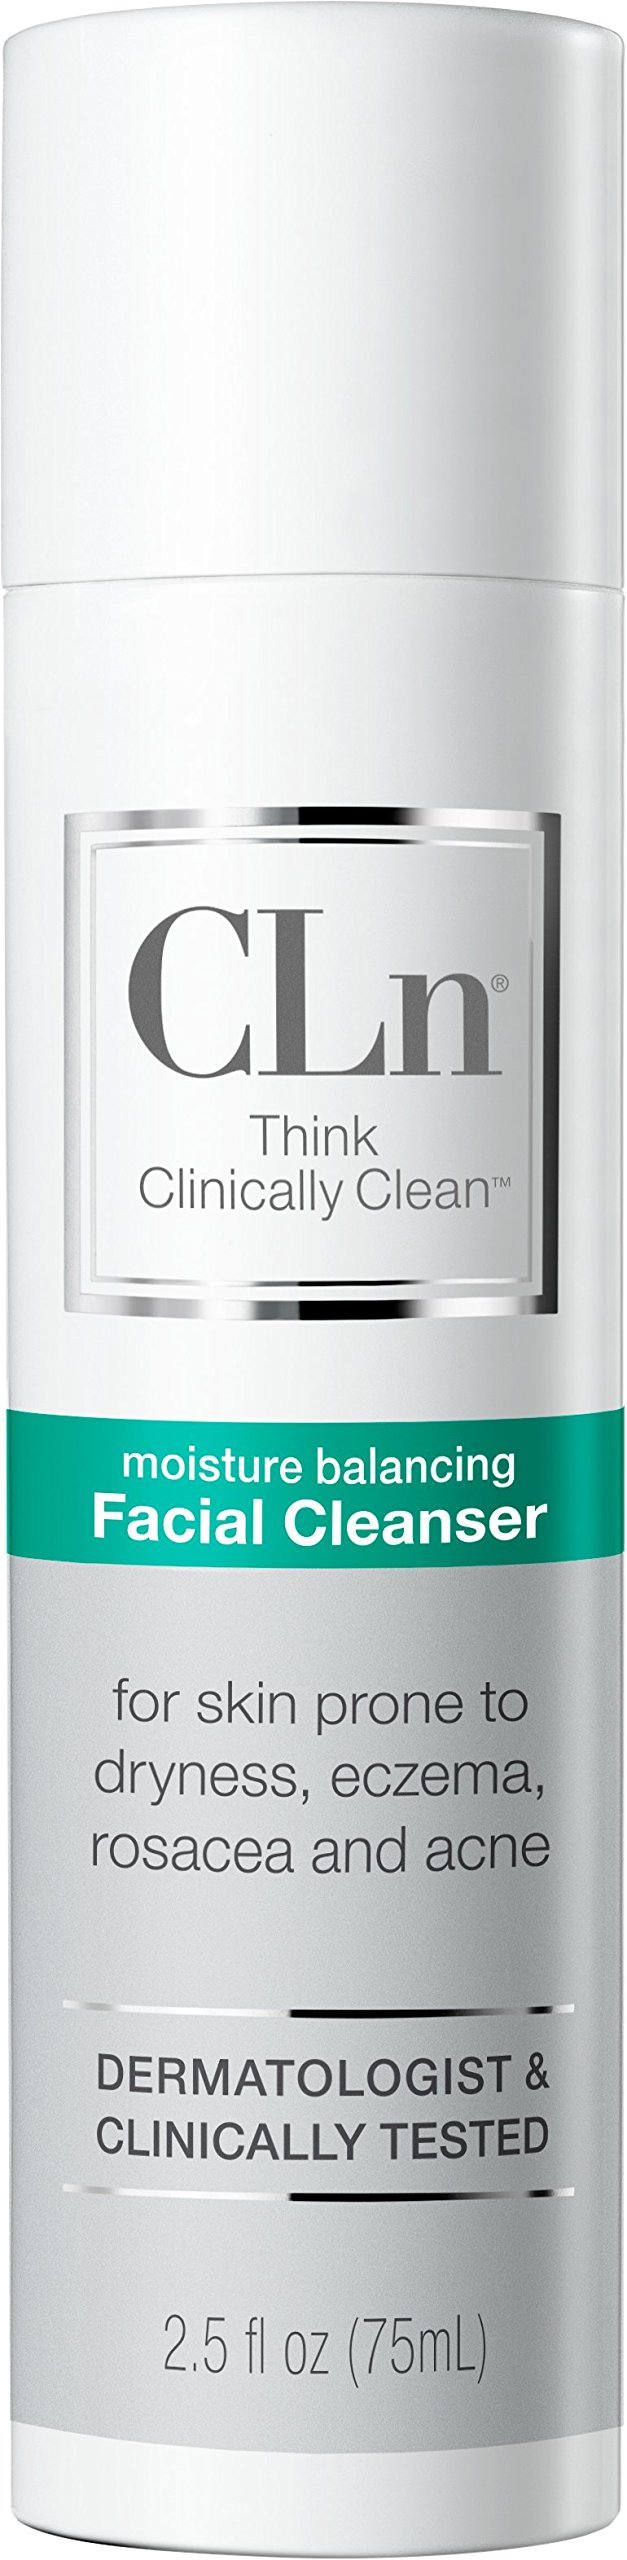 facial cleanser tested Clinically